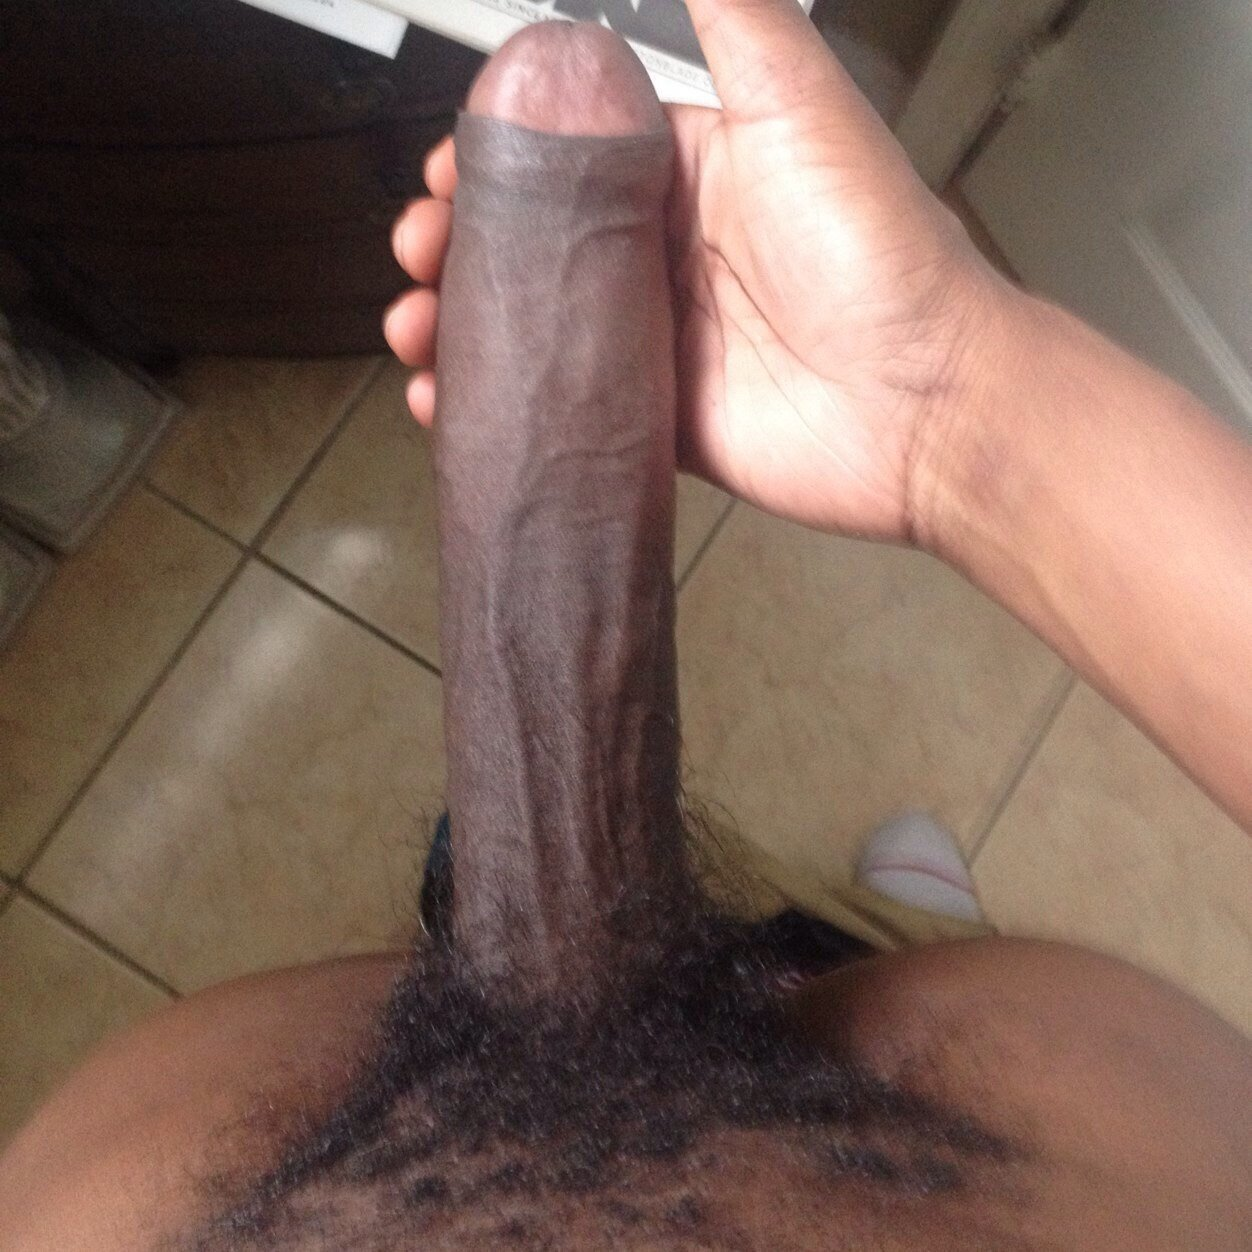 Sexy largenude penis photo xxx picture